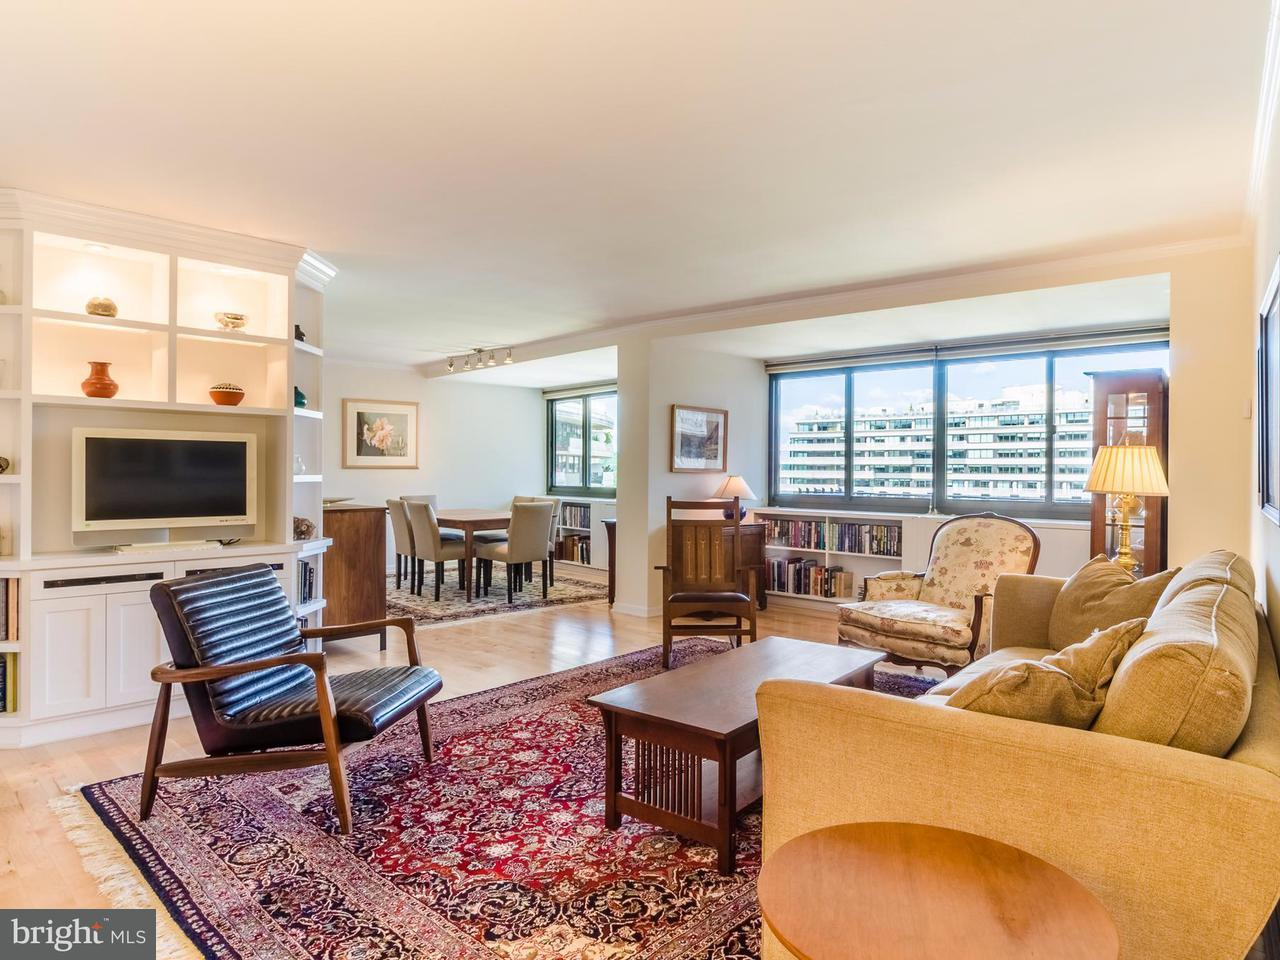 Townhouse for Sale at 2500 VIRGINIA AVE NW #1017-S 2500 VIRGINIA AVE NW #1017-S Washington, District Of Columbia 20037 United States